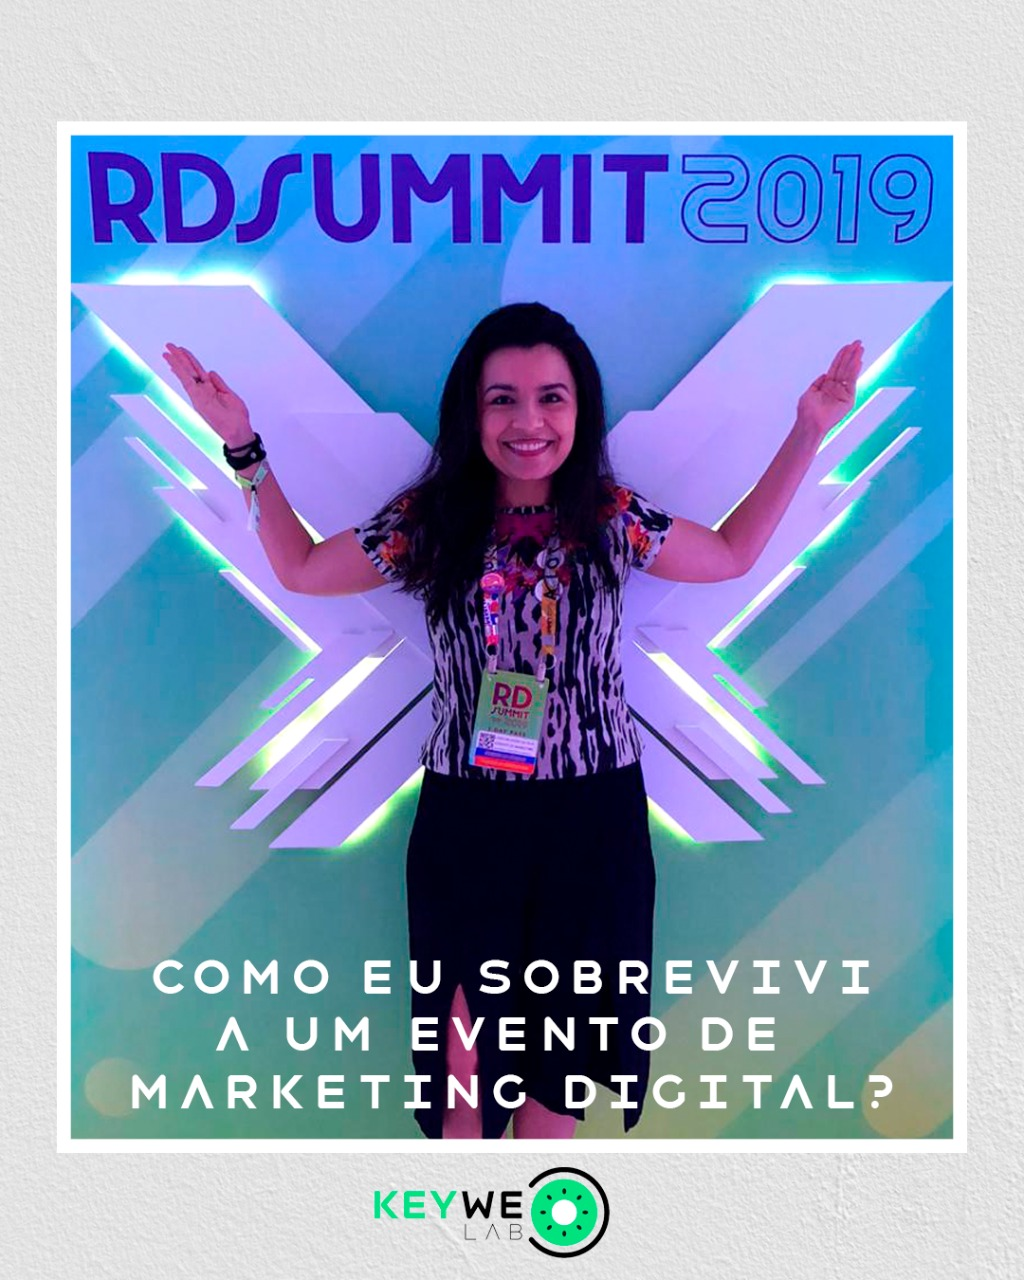 #11 Como eu sobrevivi a um evento de marketing digital